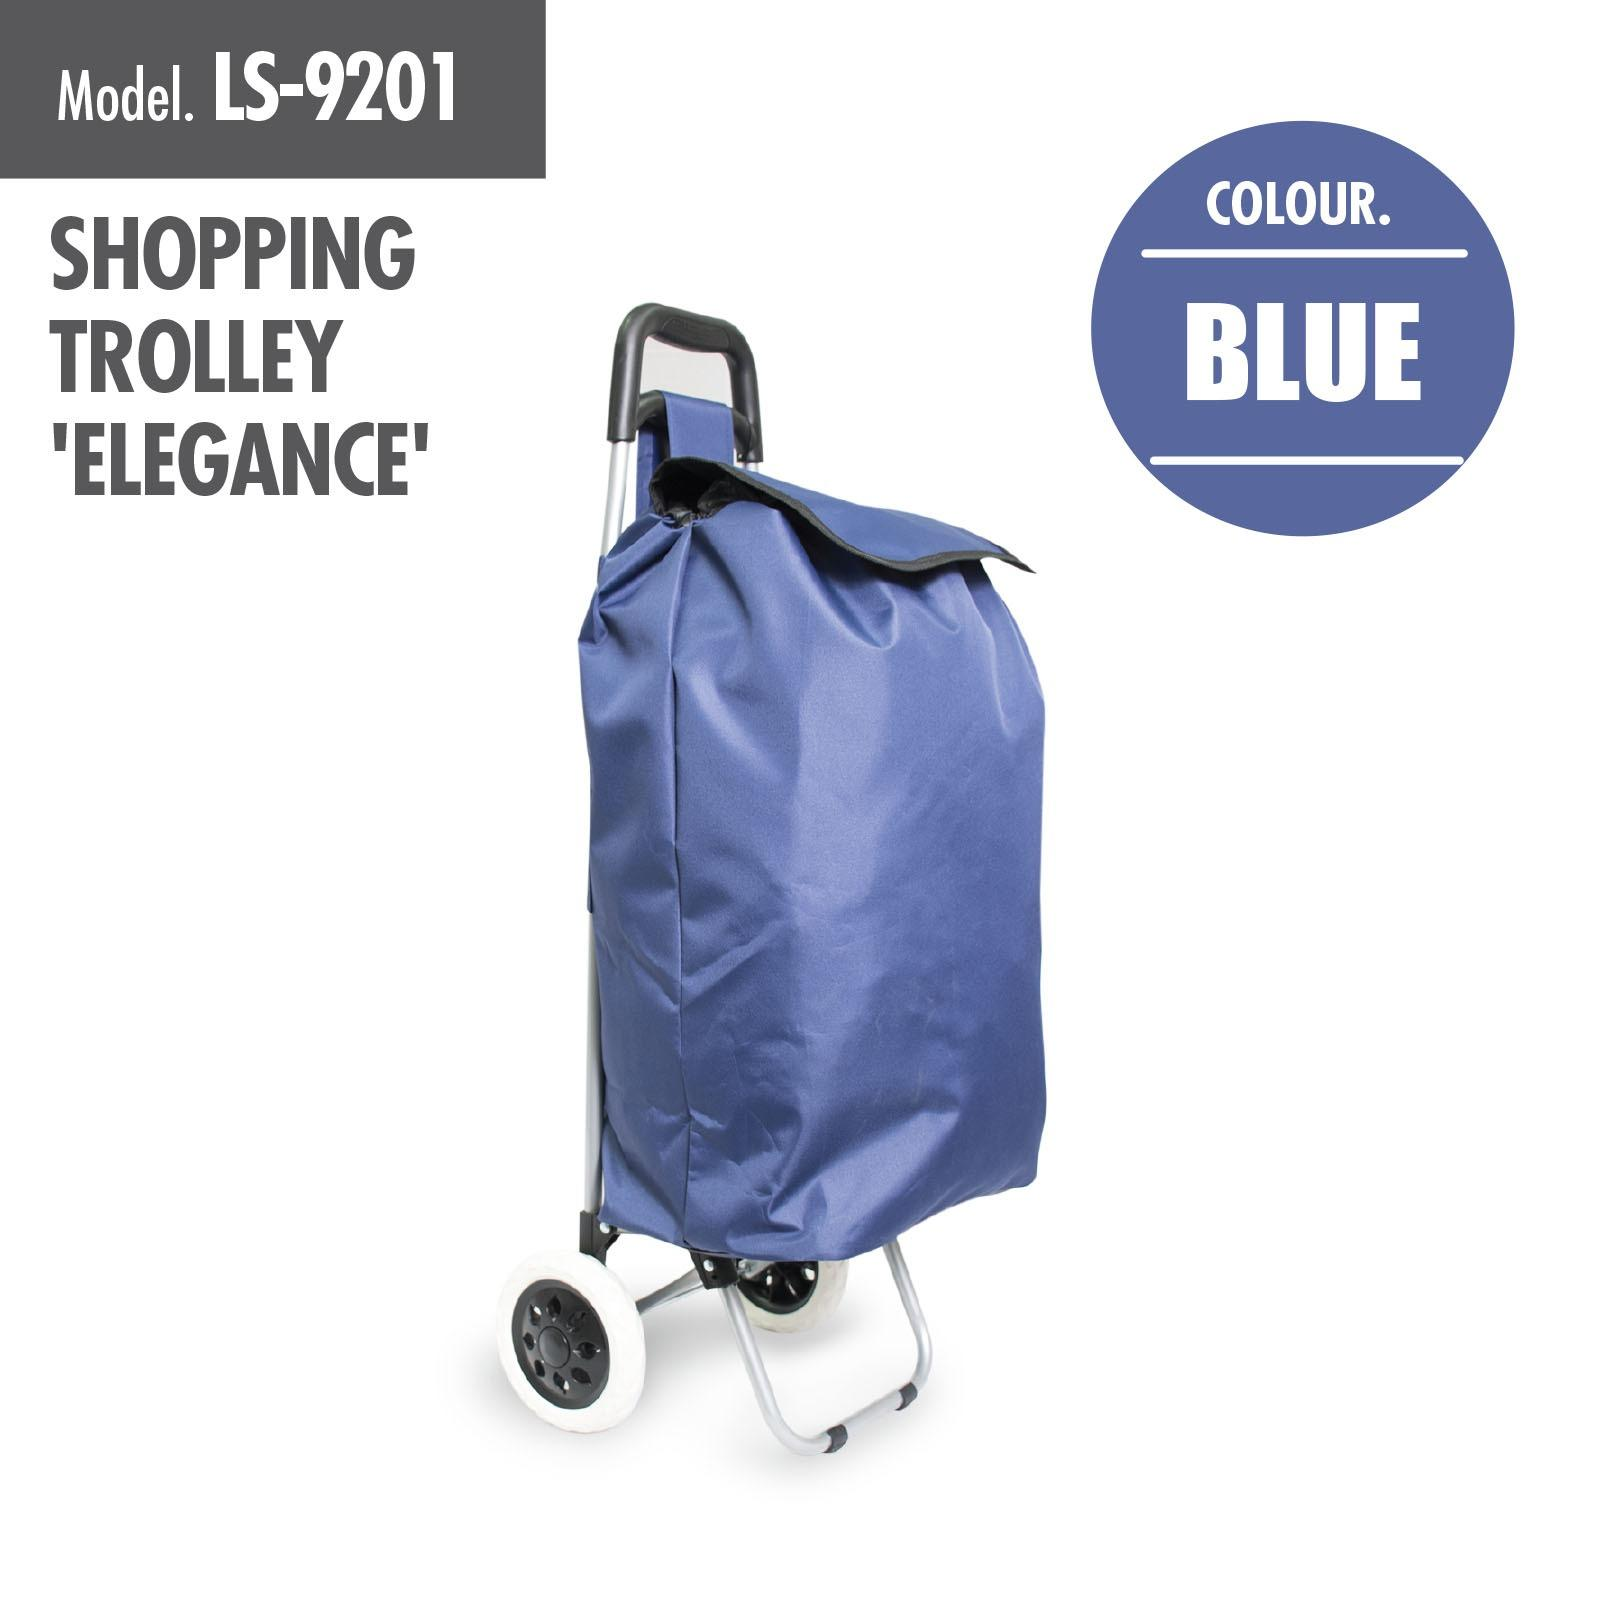 Where To Buy Houze Shopping Trolley Elegance